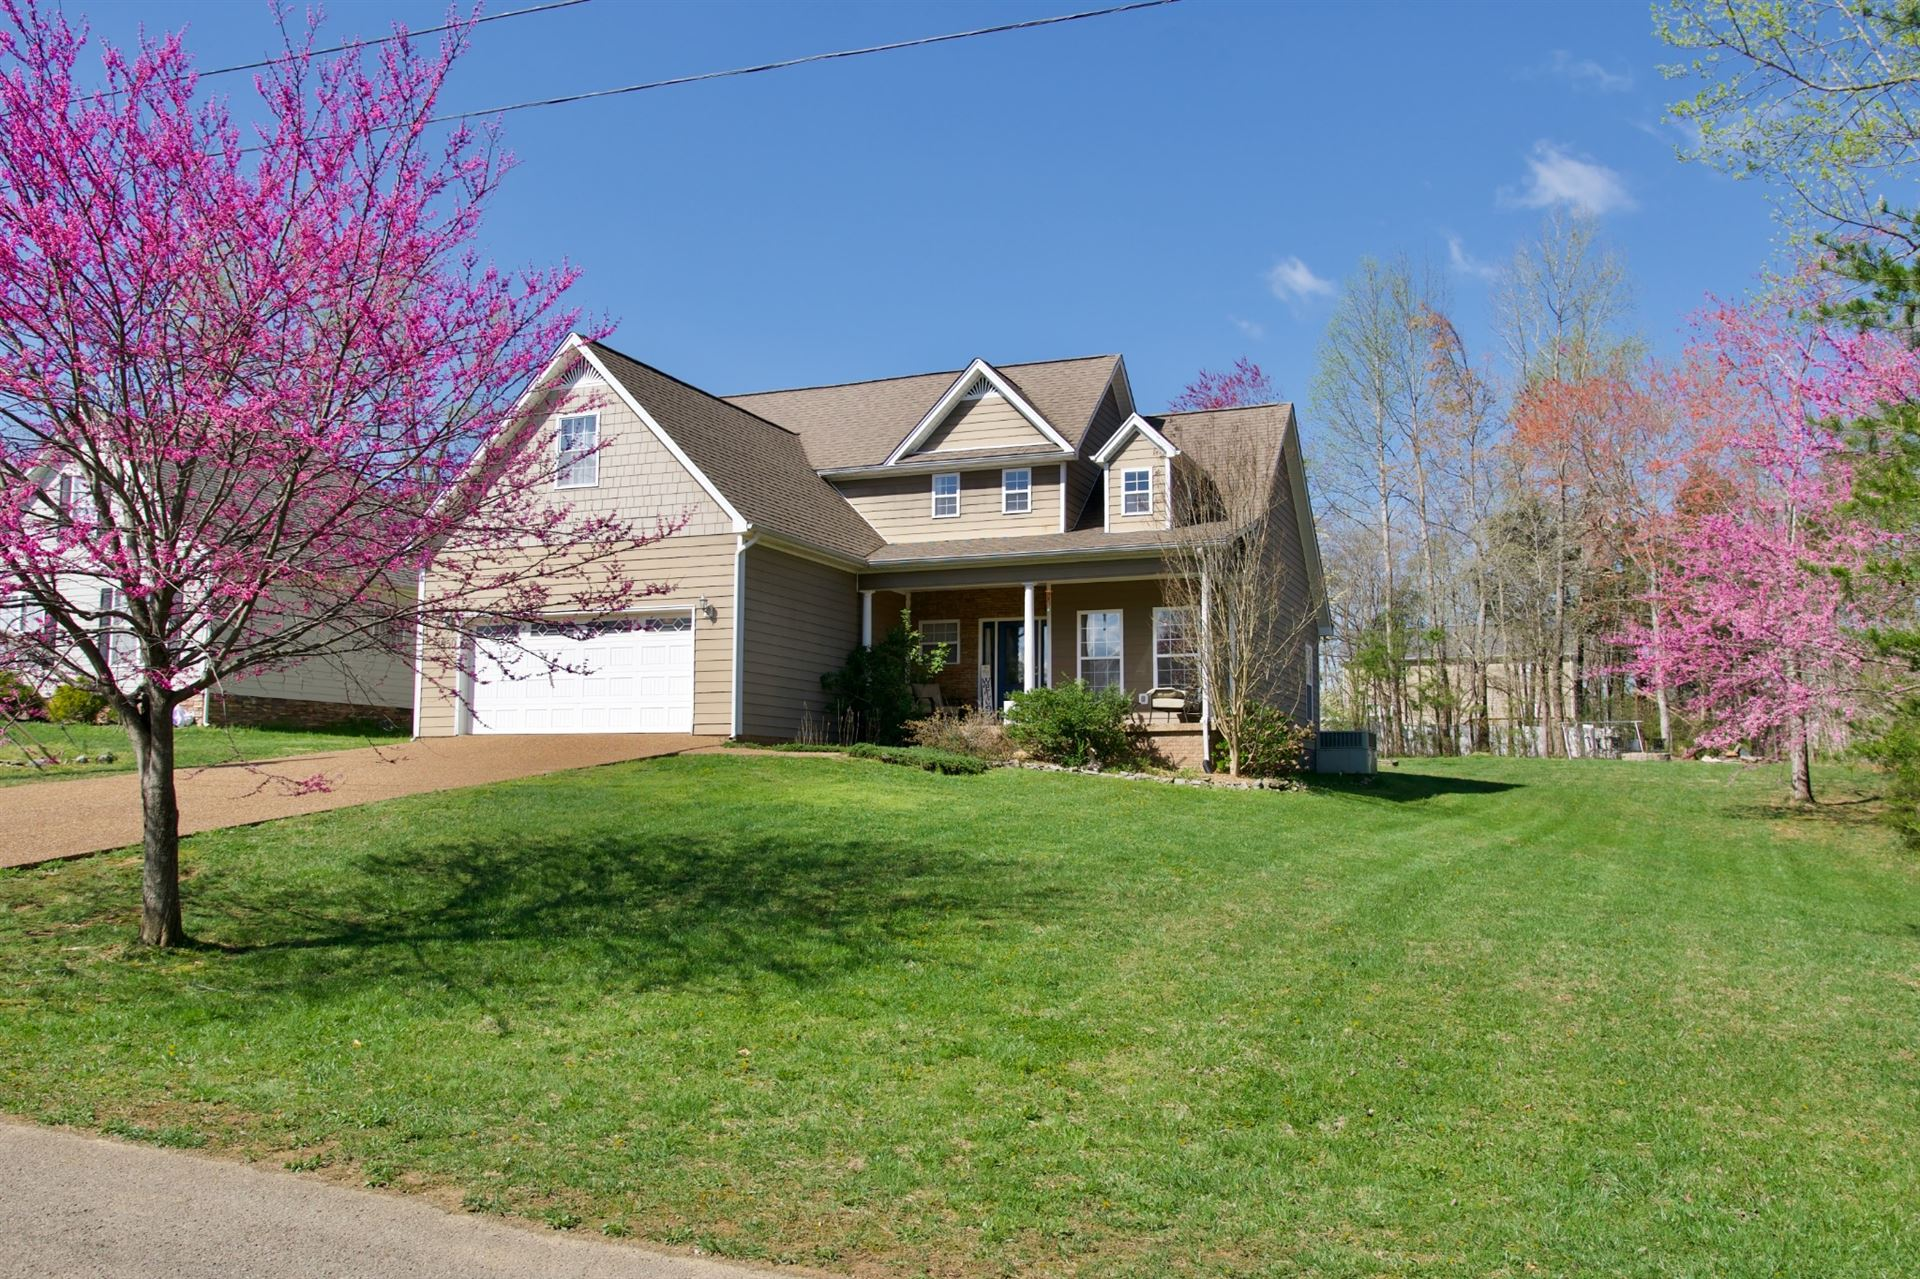 4950 Curtis Dr, Cookeville, TN 38506 - MLS#: 2241575